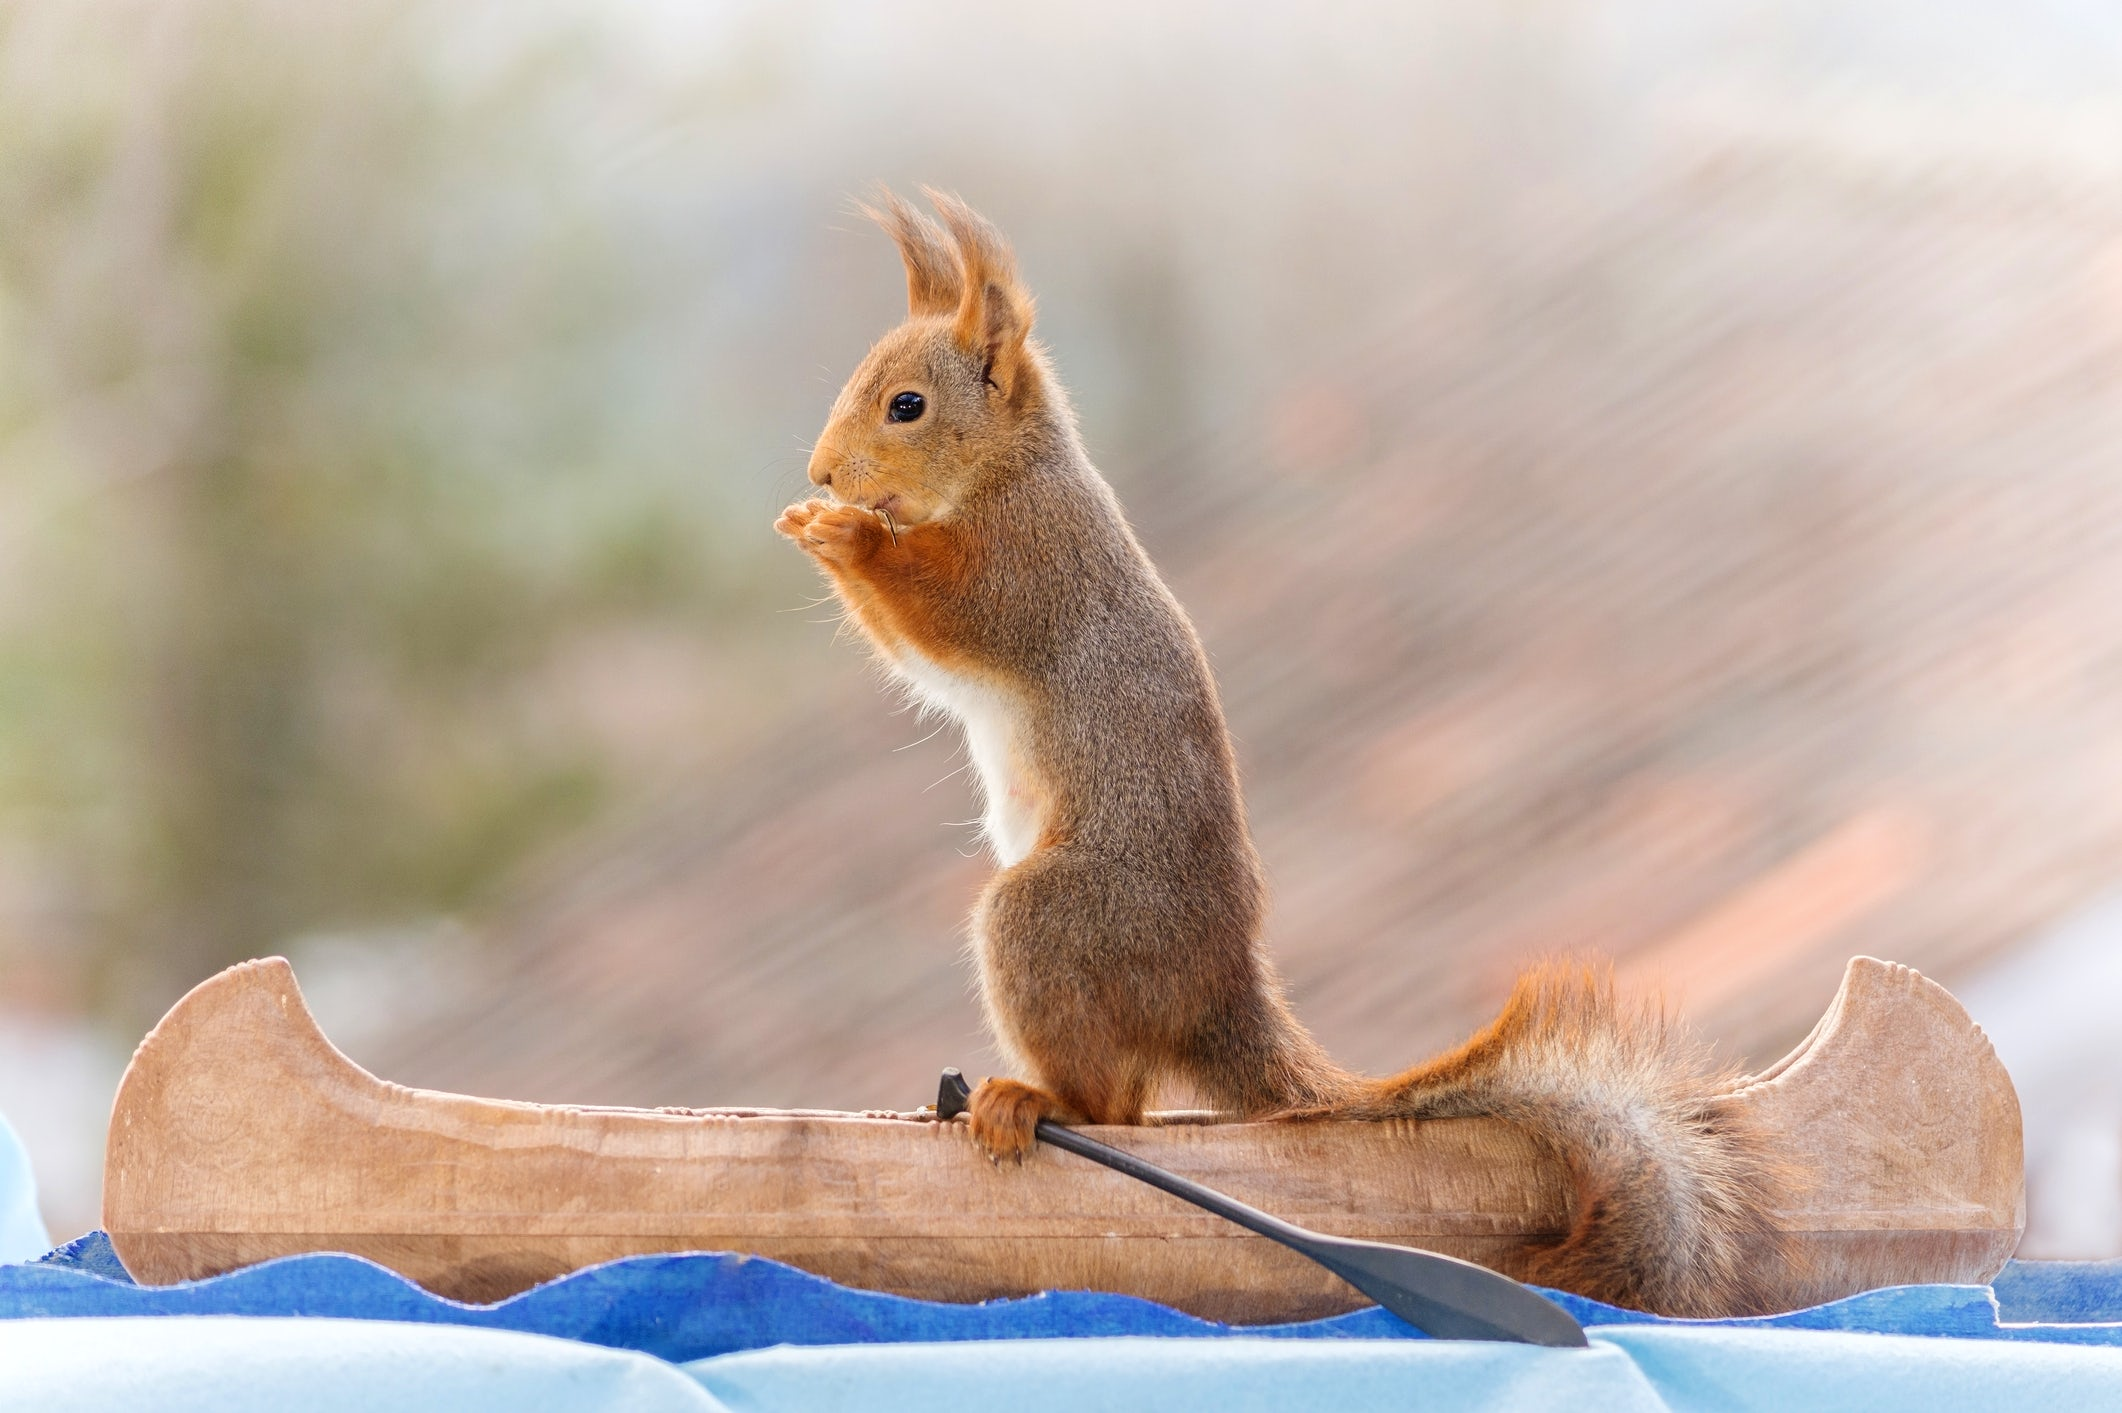 Canoeing the Trebižat River: Wildlife at its purest